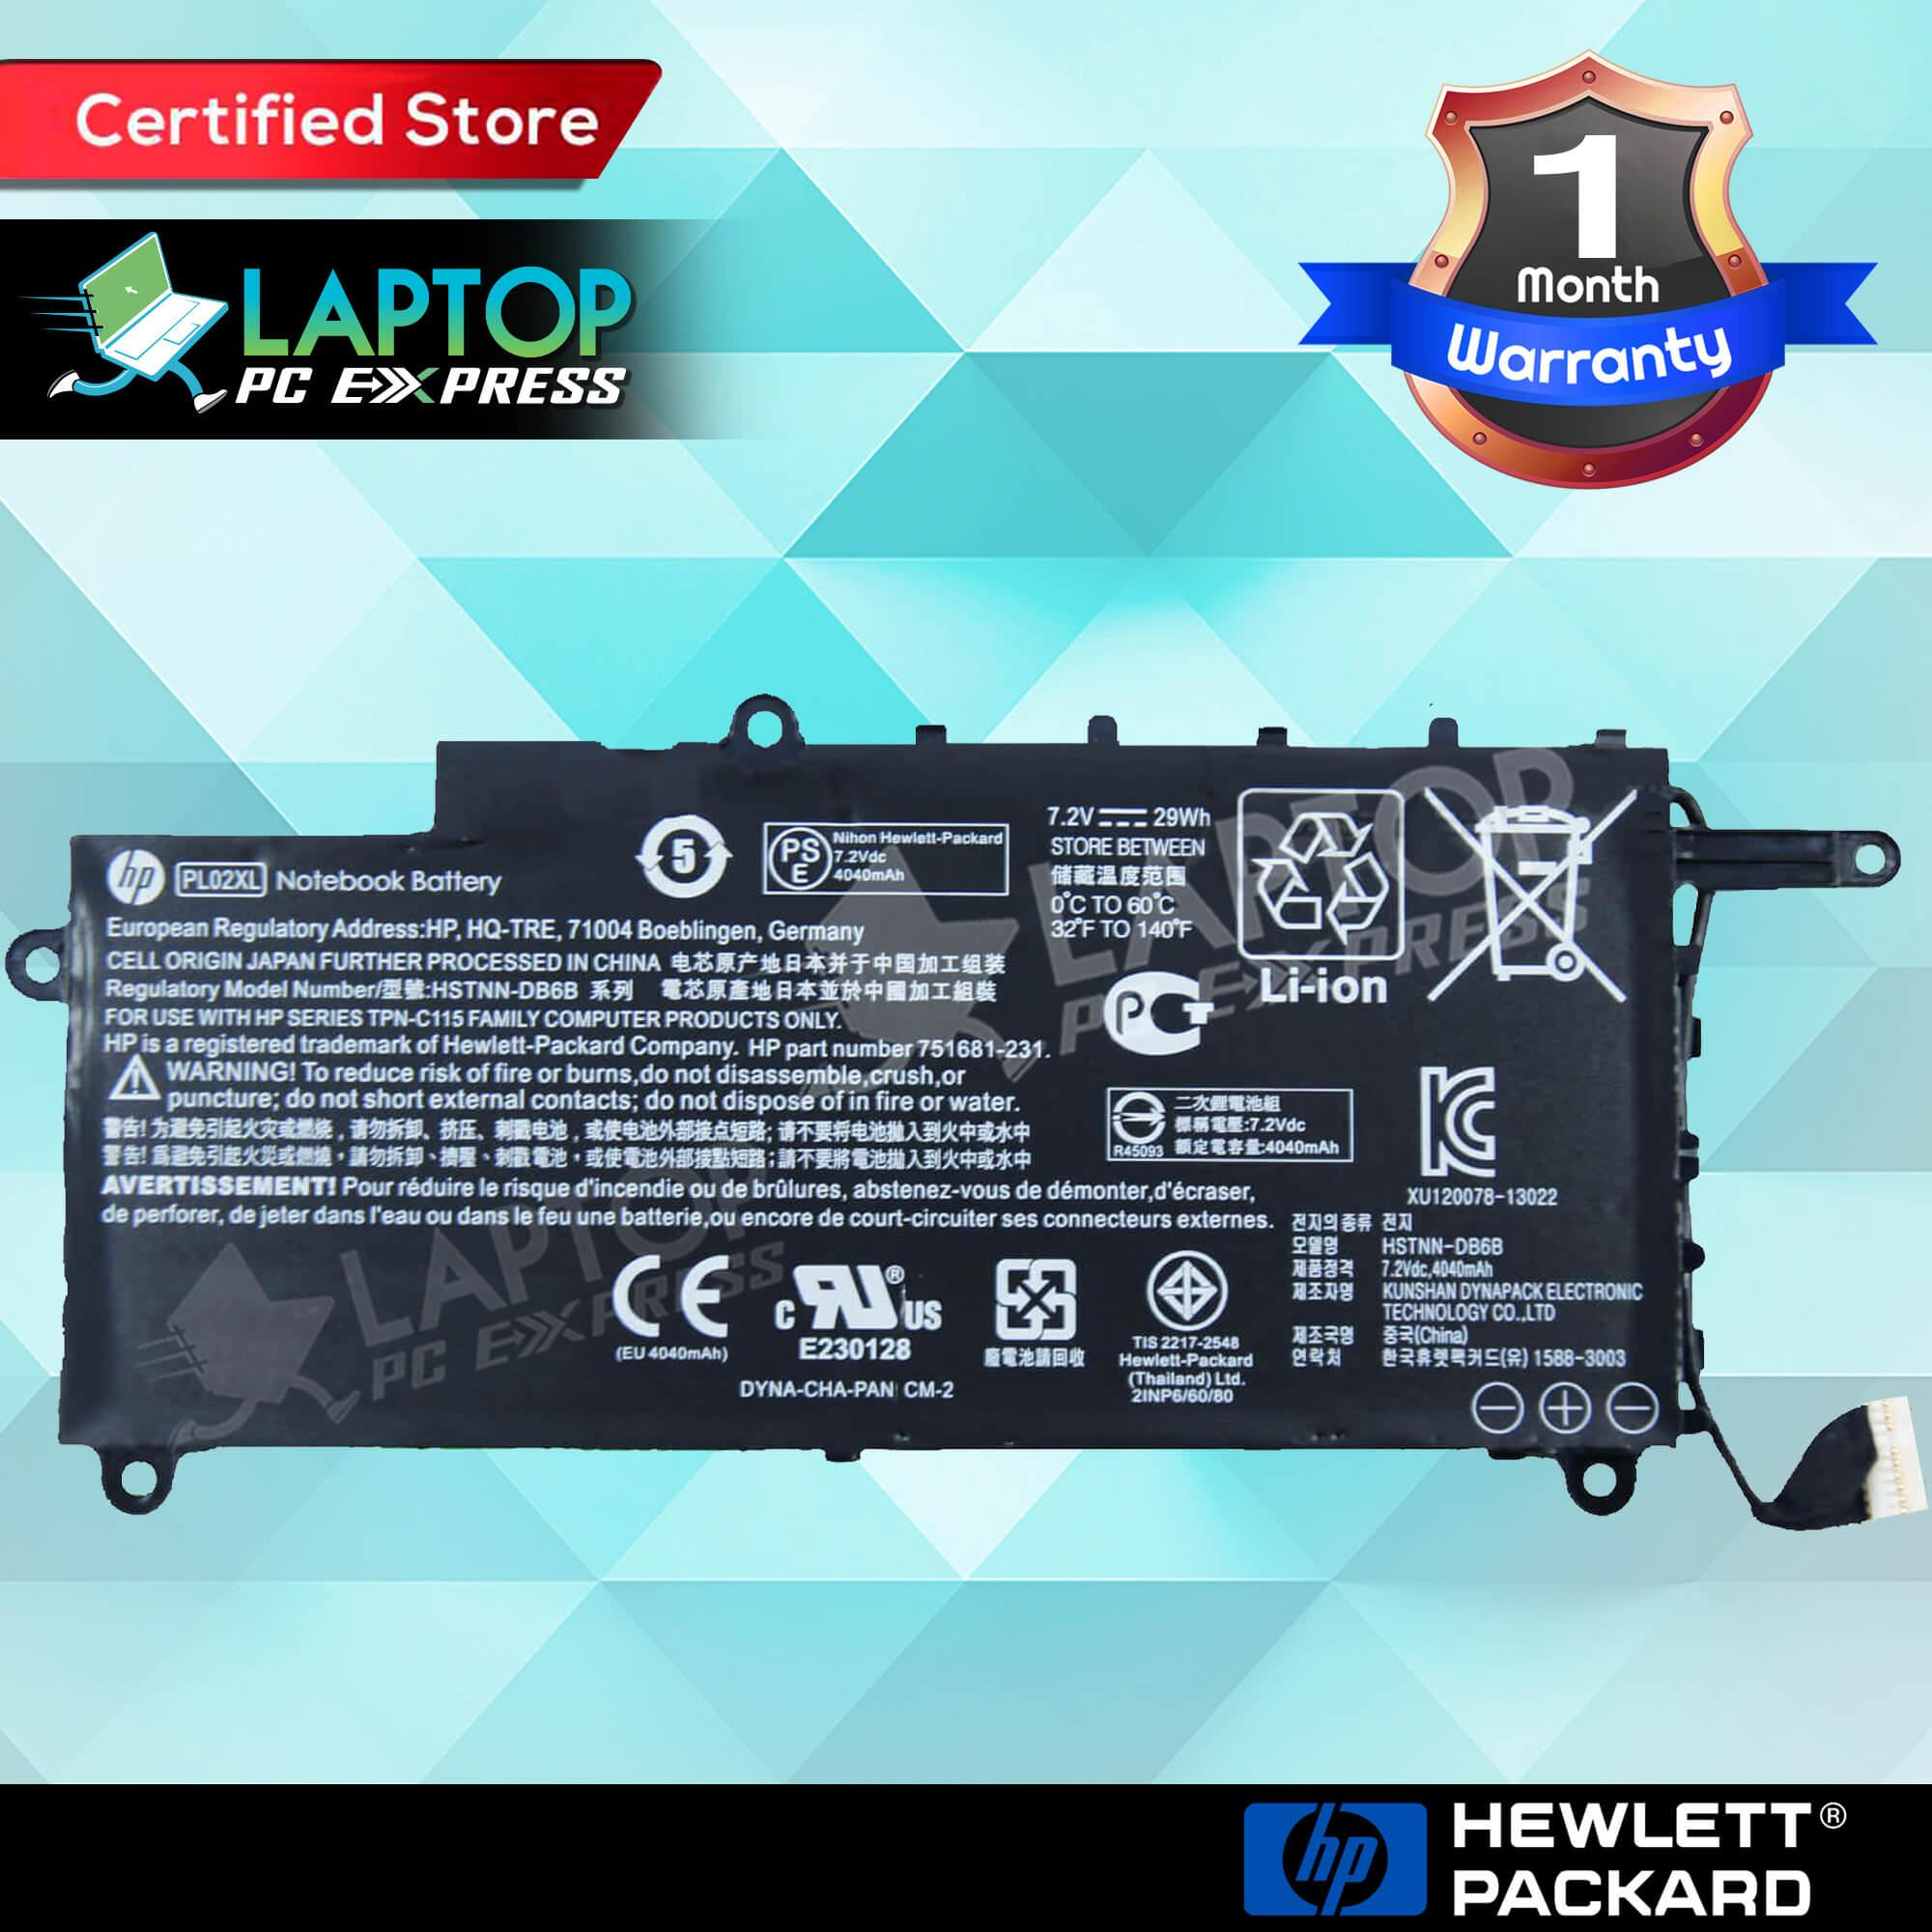 Computer Batteries for sale - PC Batteries prices, brands & specs in